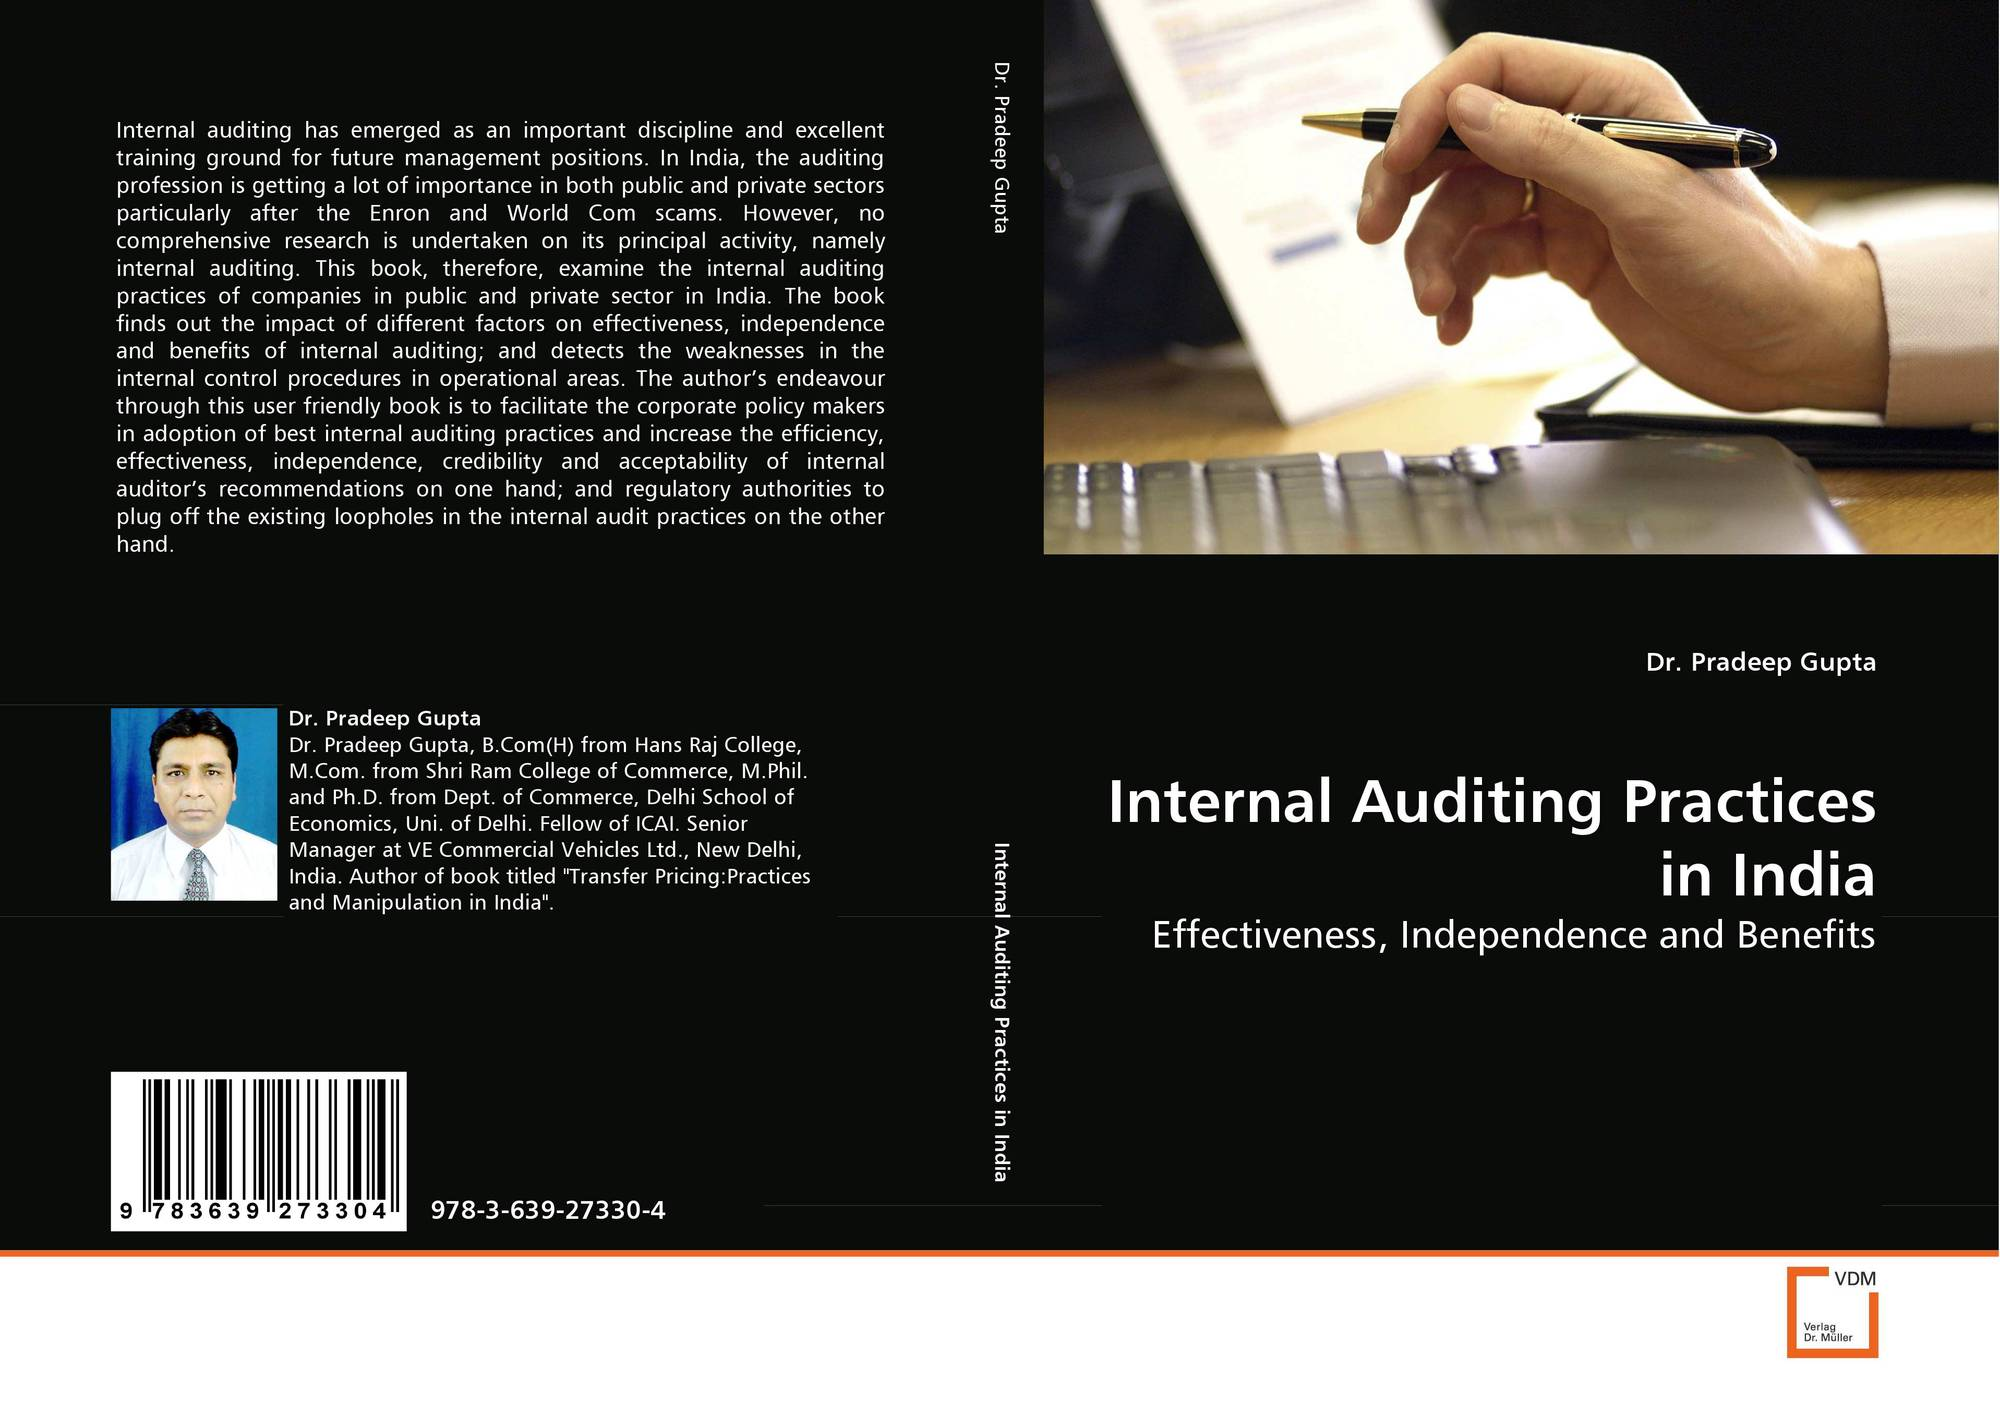 Internal Auditing Practices in India, 978-3-639-27330-4, 3639273303